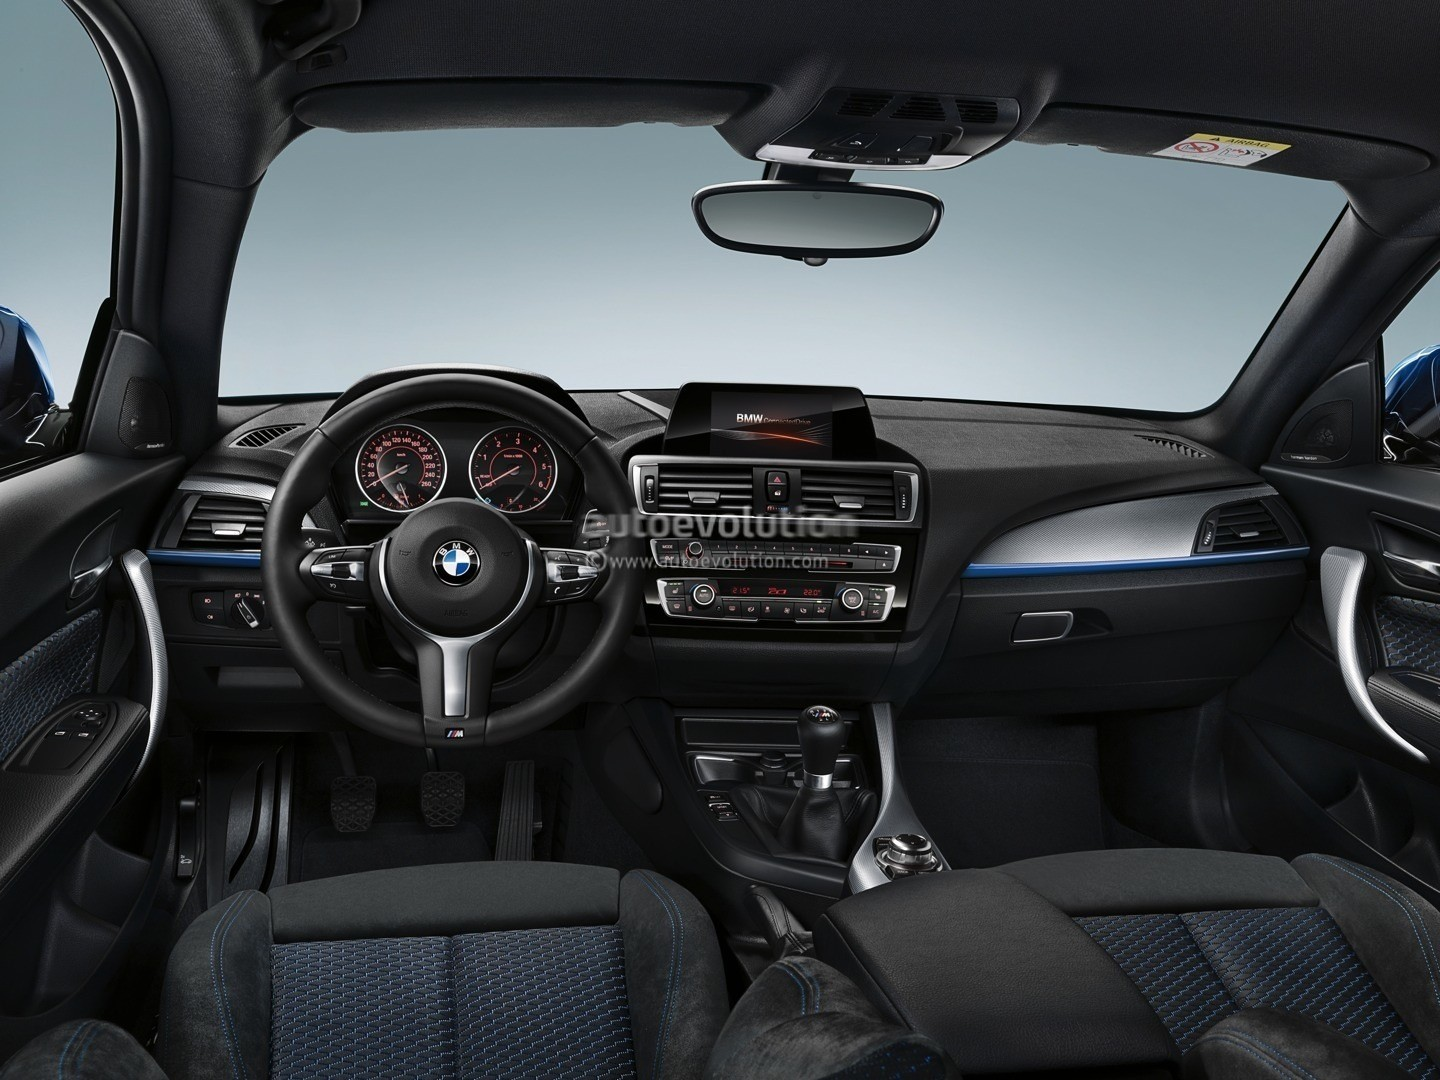 Photo Comparison Bmw F20 1 Series Facelift Versus Bmw F20 1 Series Pre Facelift Autoevolution